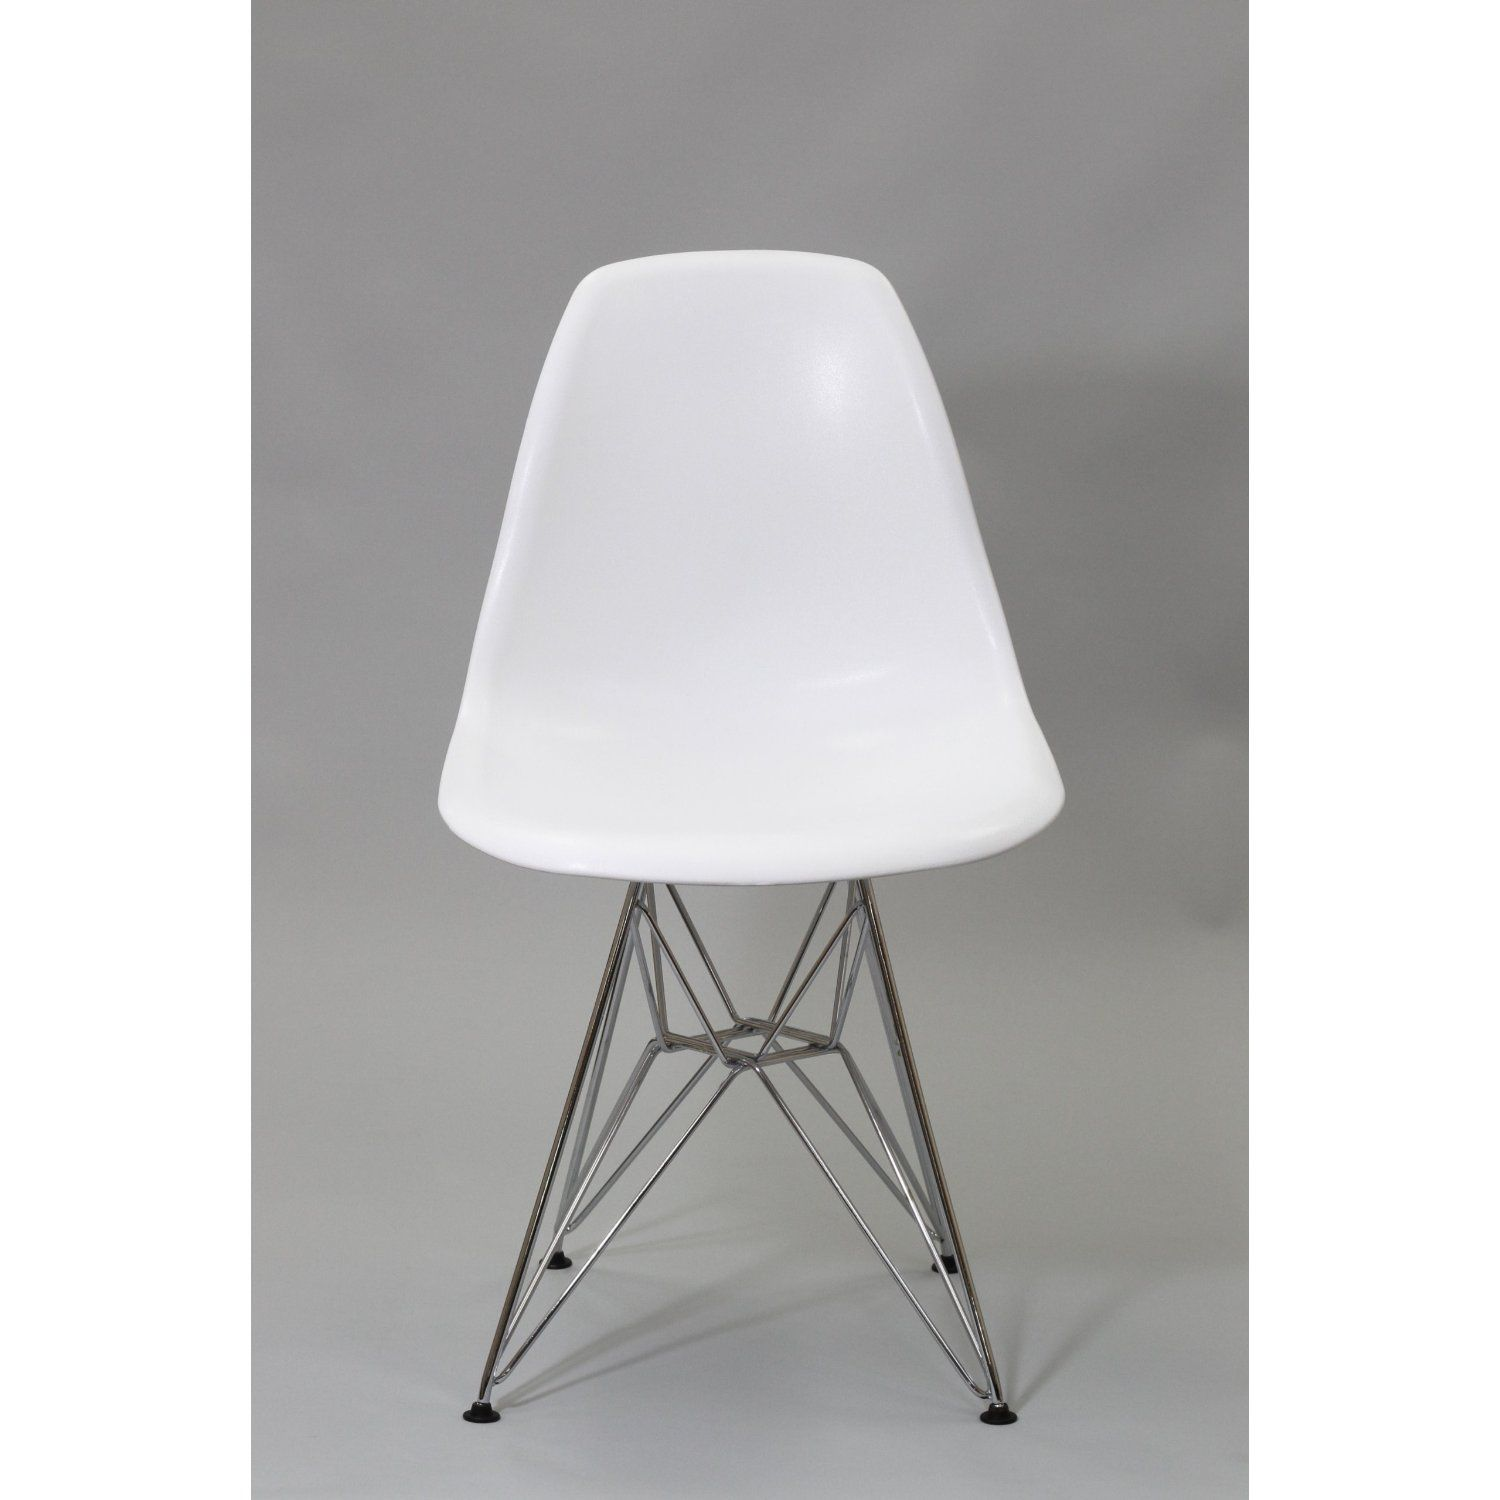 Eames Eiffel Chairs Eames Eiffel Chair Chair Eiffel Chair